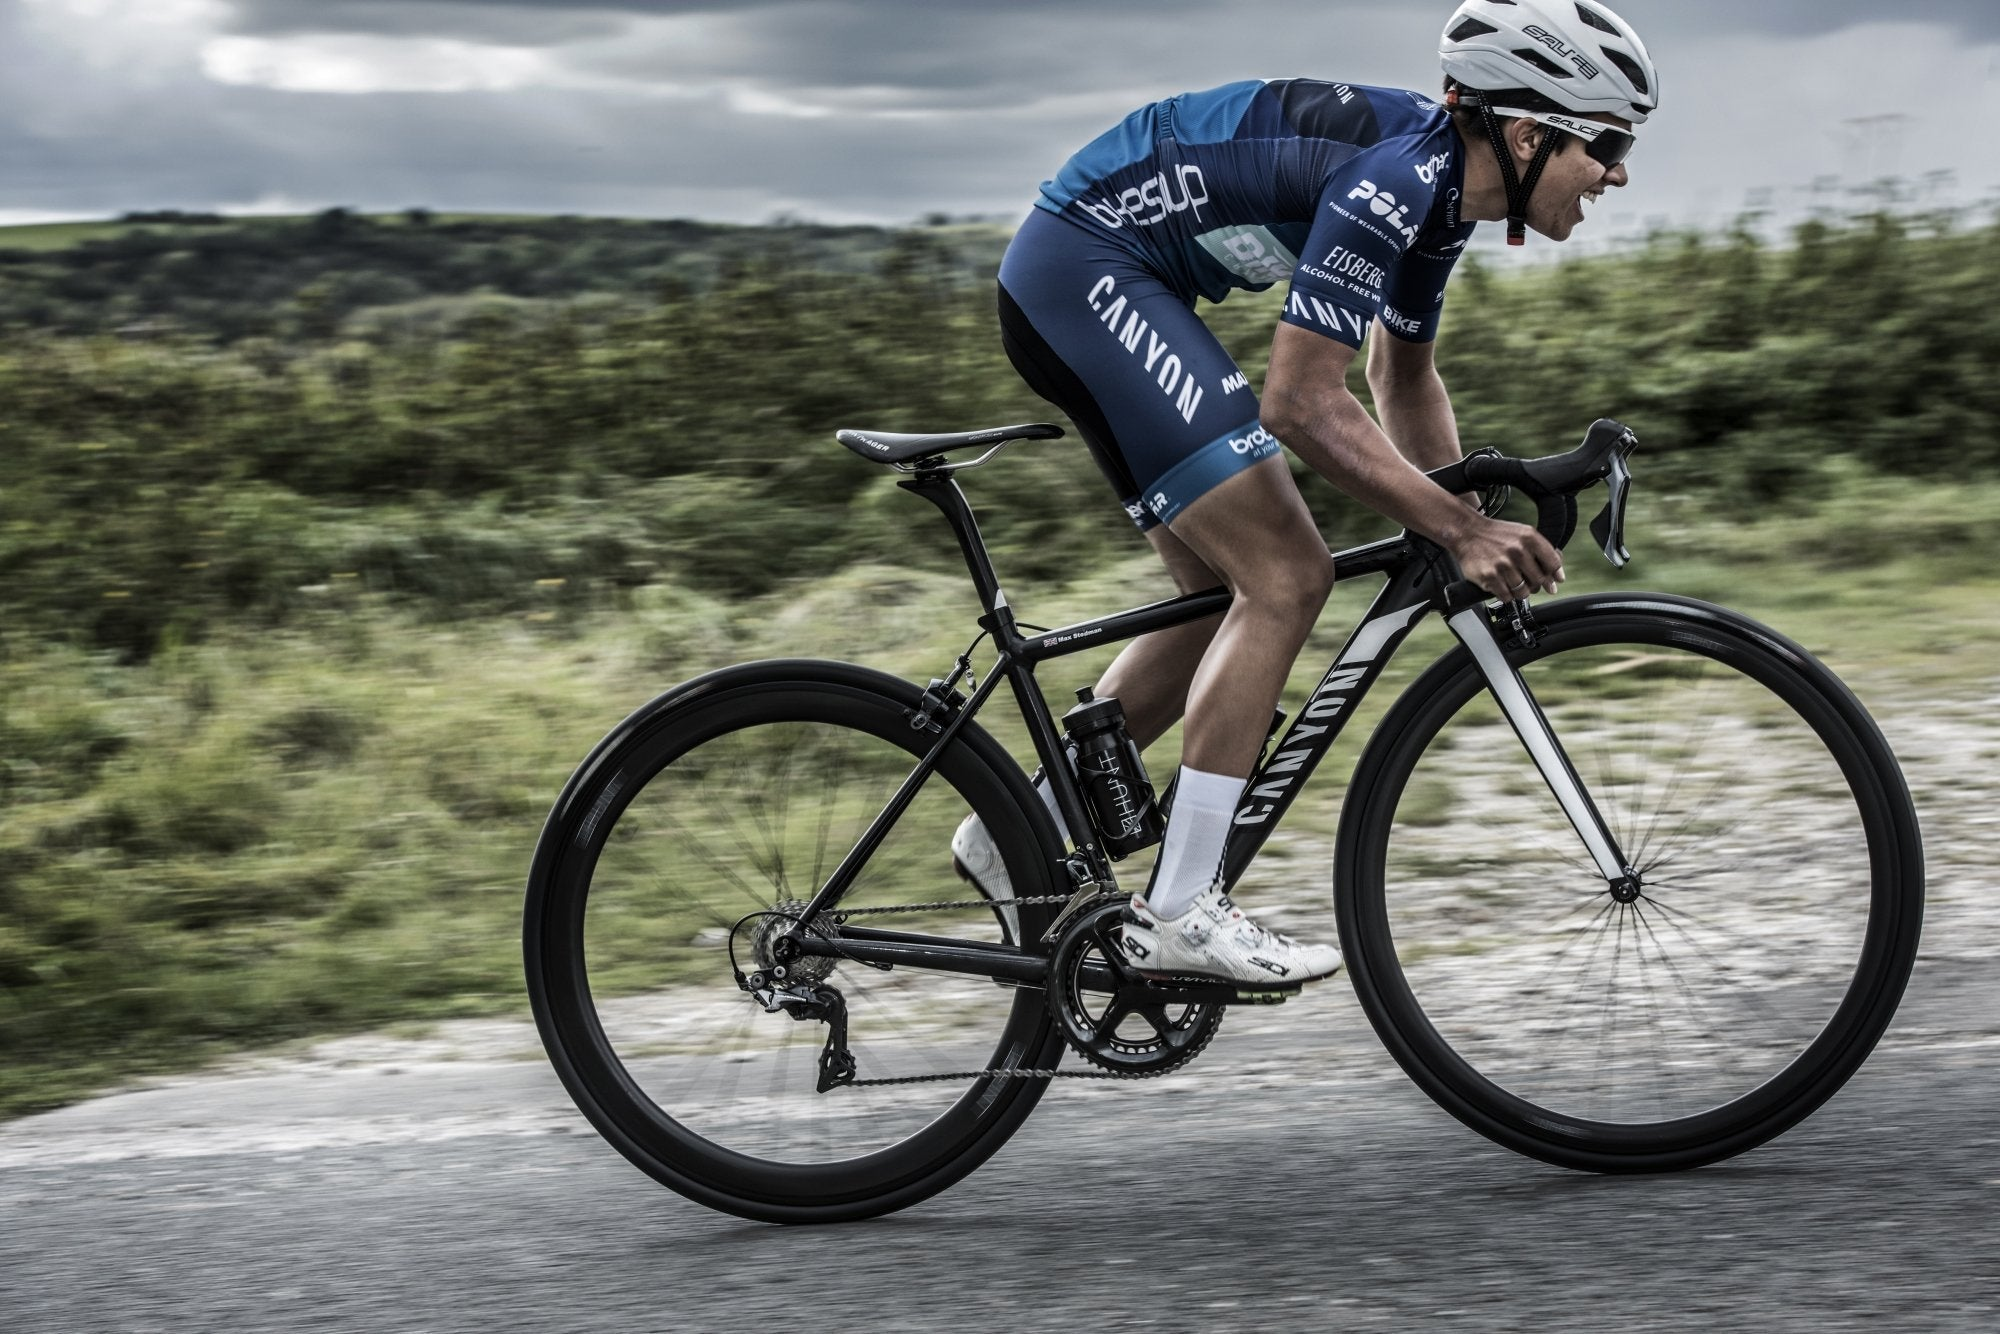 <h1>Weight</h1><i>The consequence of the fanatical attention to detail is an outstandingly light 1417g wheelset weight in a lightning fast stiff aero package. We've enjoyed free wheeling in the pack whilst all others are pedalling, is it cheating?</i>